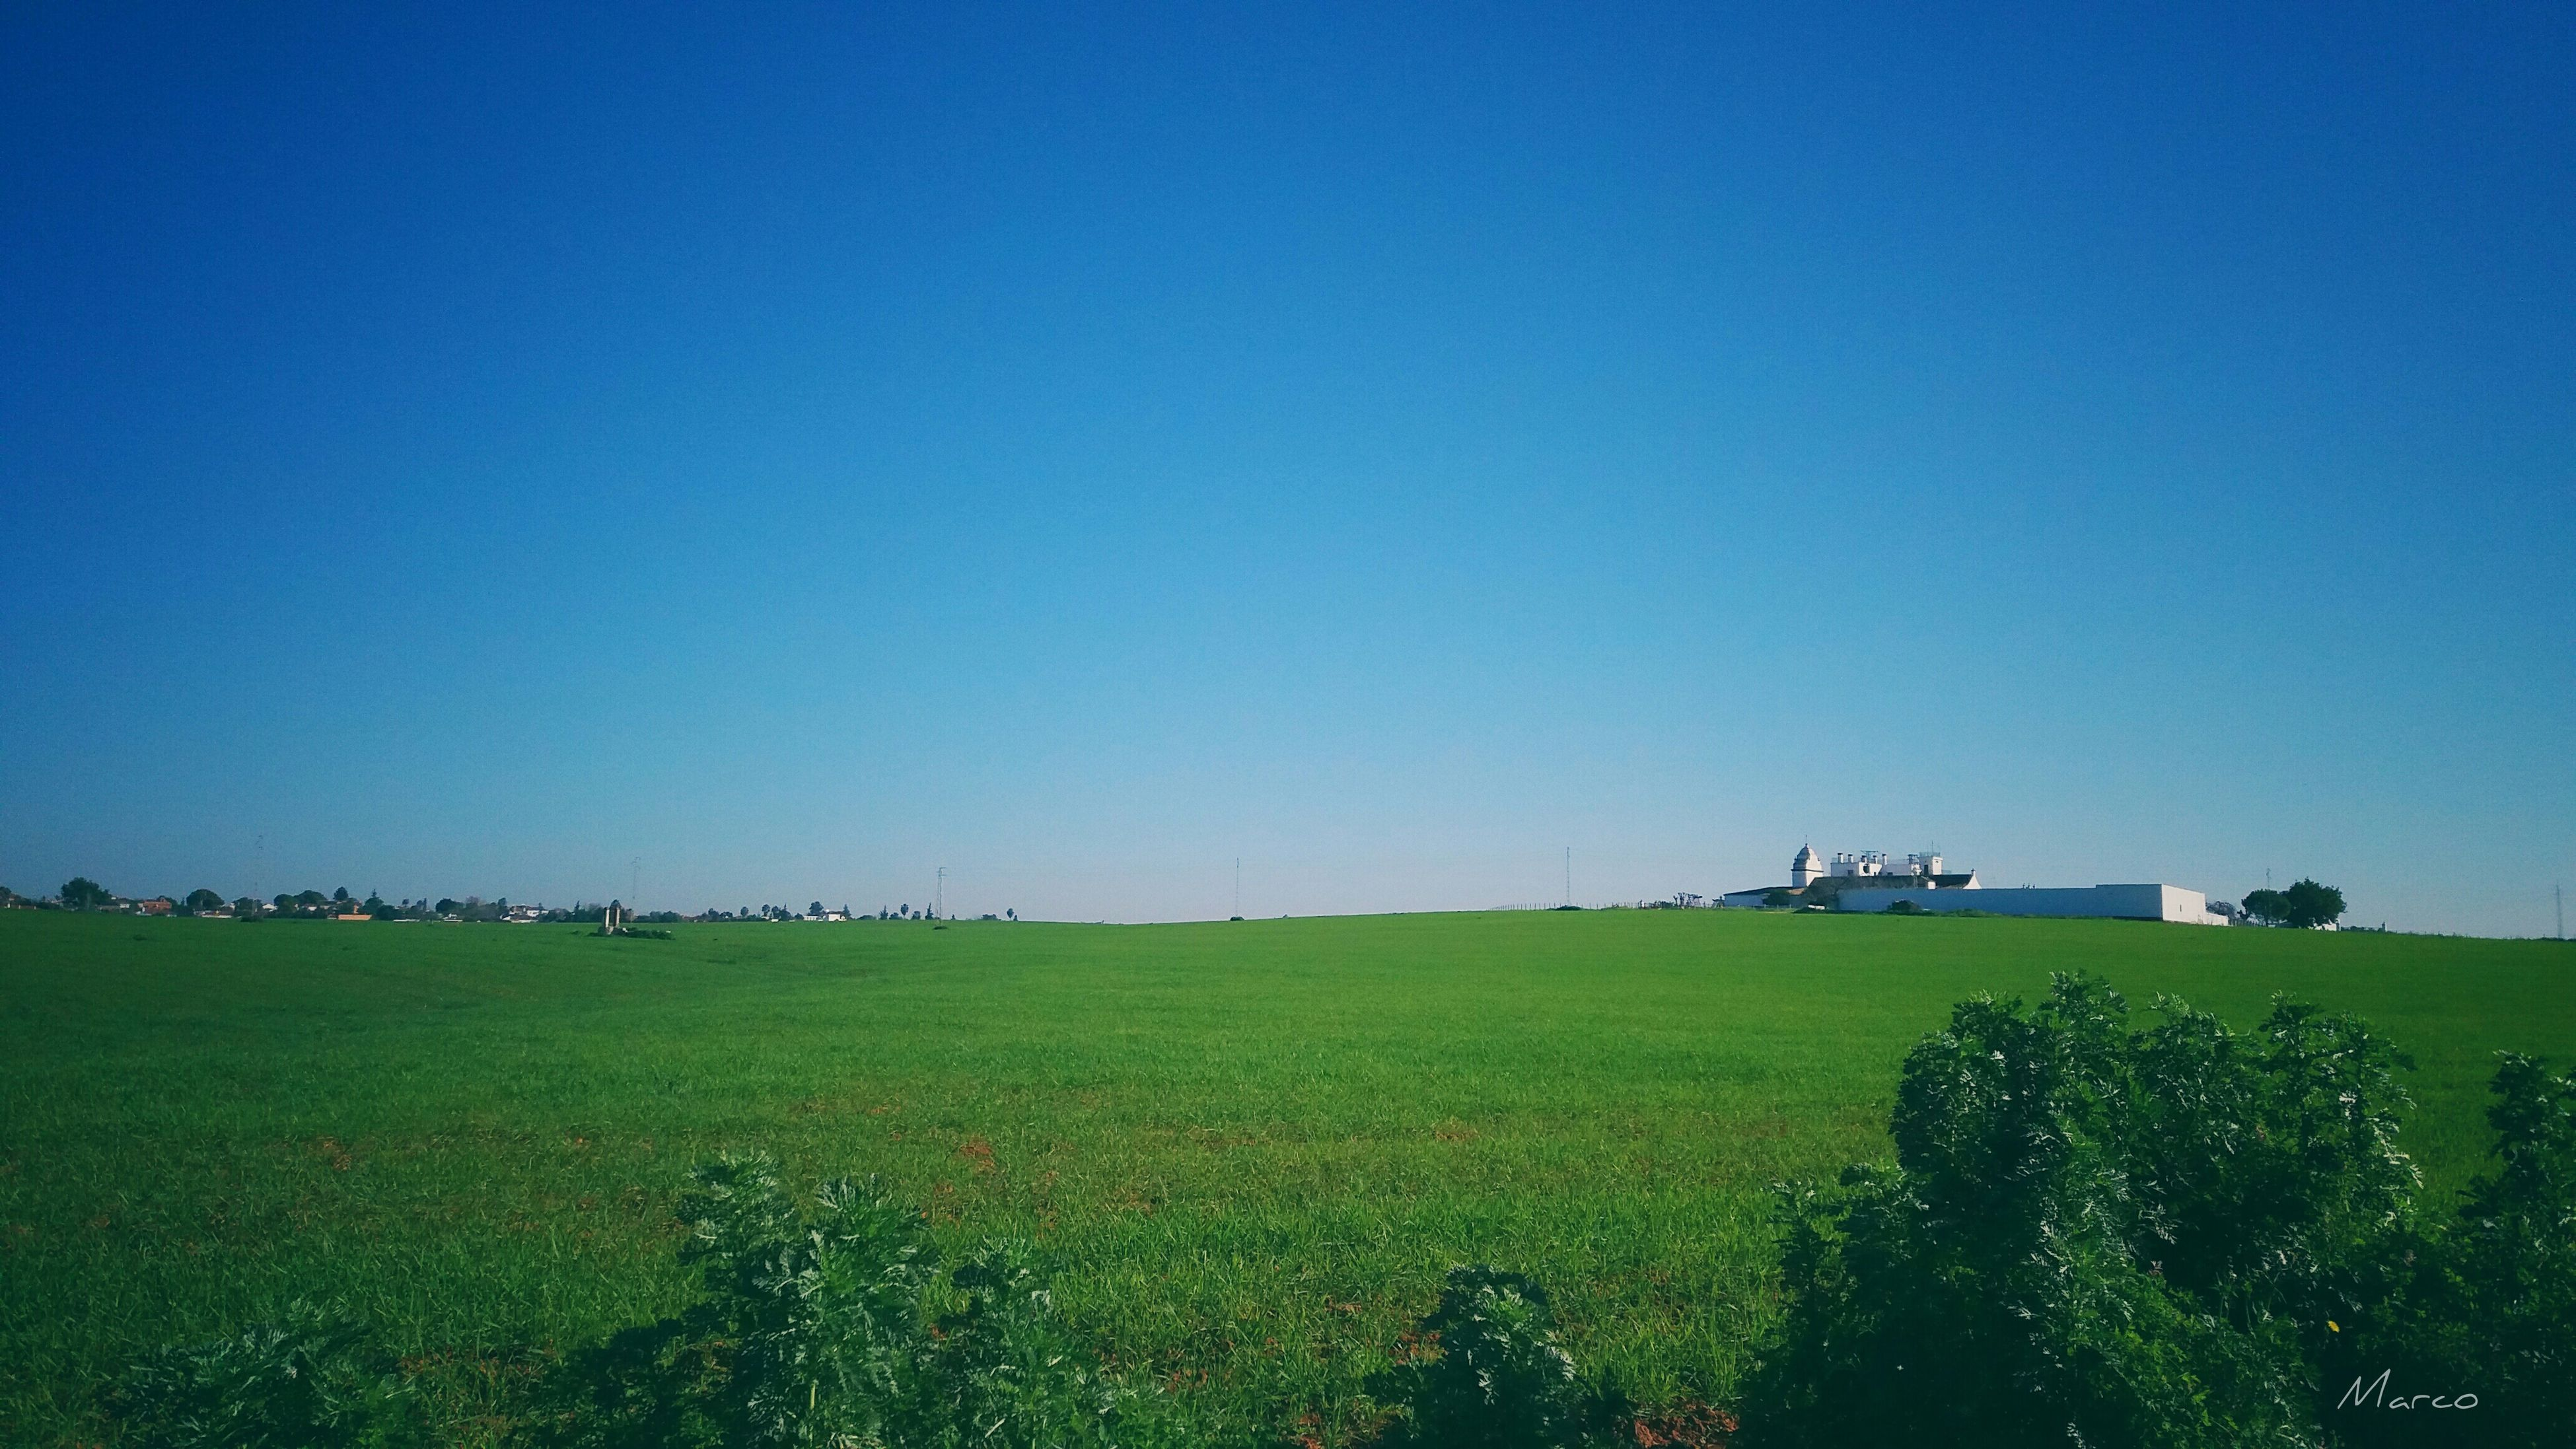 blue, copy space, clear sky, tranquil scene, landscape, tranquility, scenics, growth, green color, rural scene, field, beauty in nature, nature, farm, agriculture, green, day, outdoors, cultivated land, non-urban scene, no people, plantation, grassy, solitude